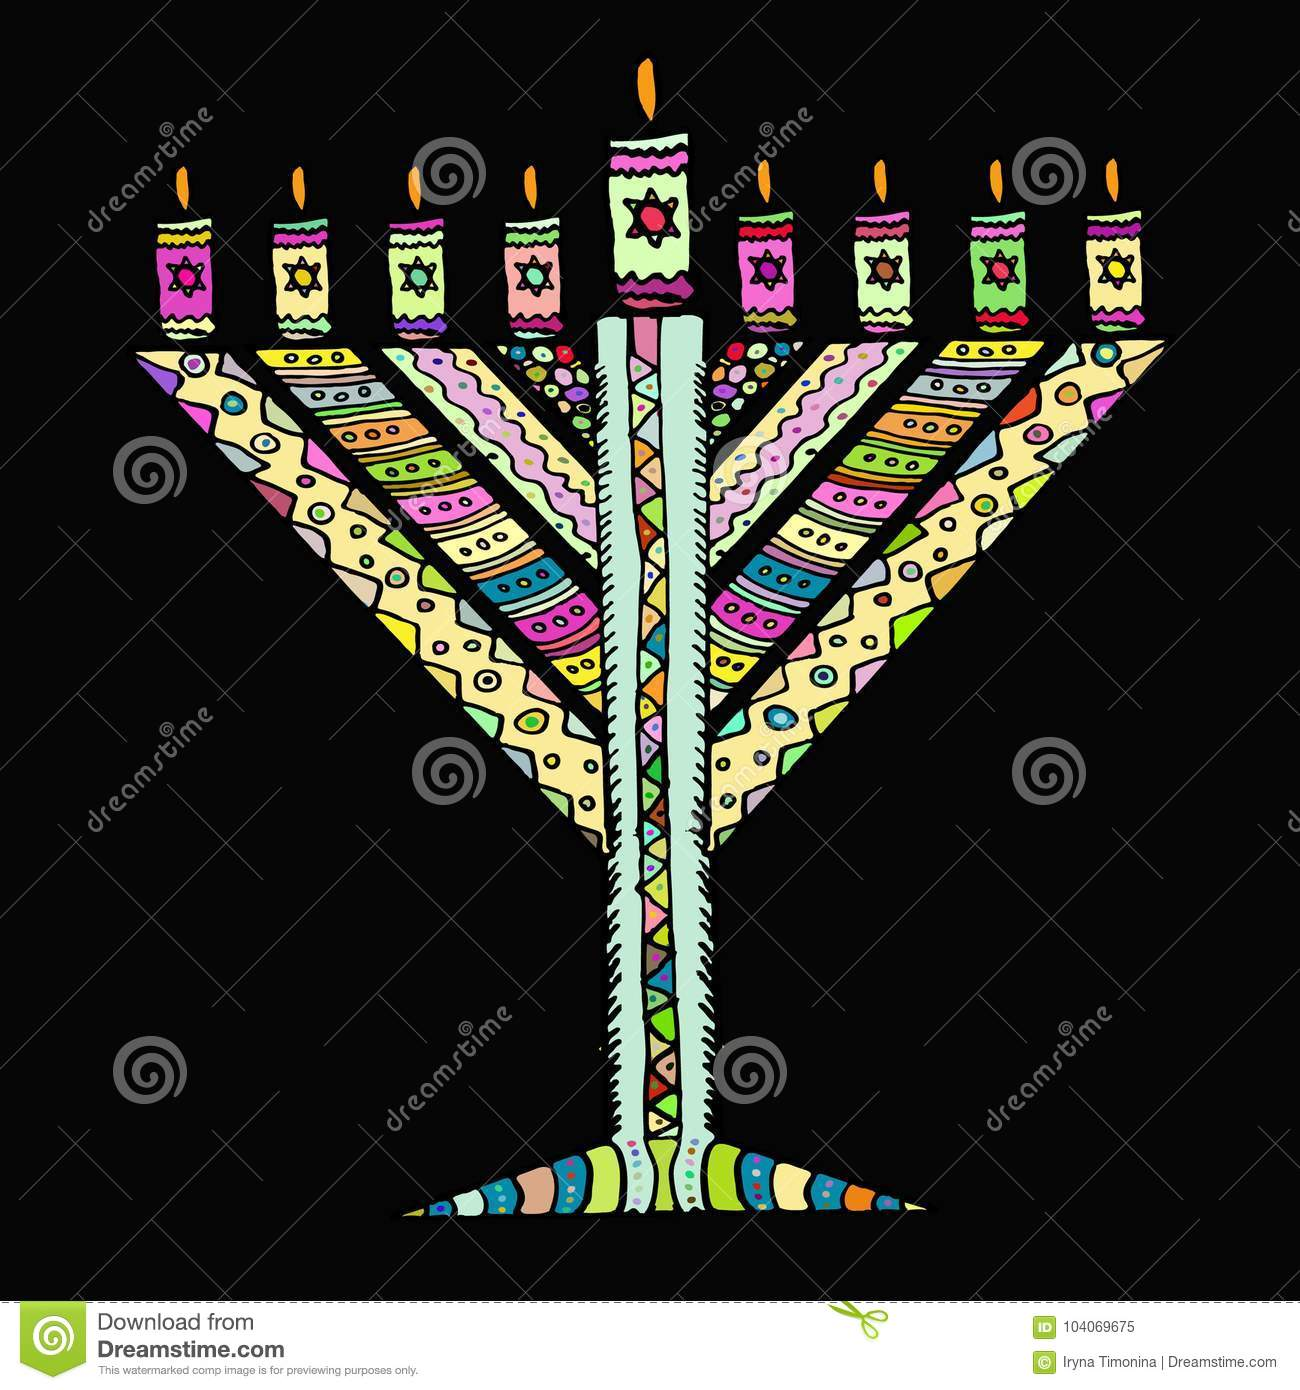 Colorful Hanukkah In The Style Of Doodle Triangular Chanukah Chabad